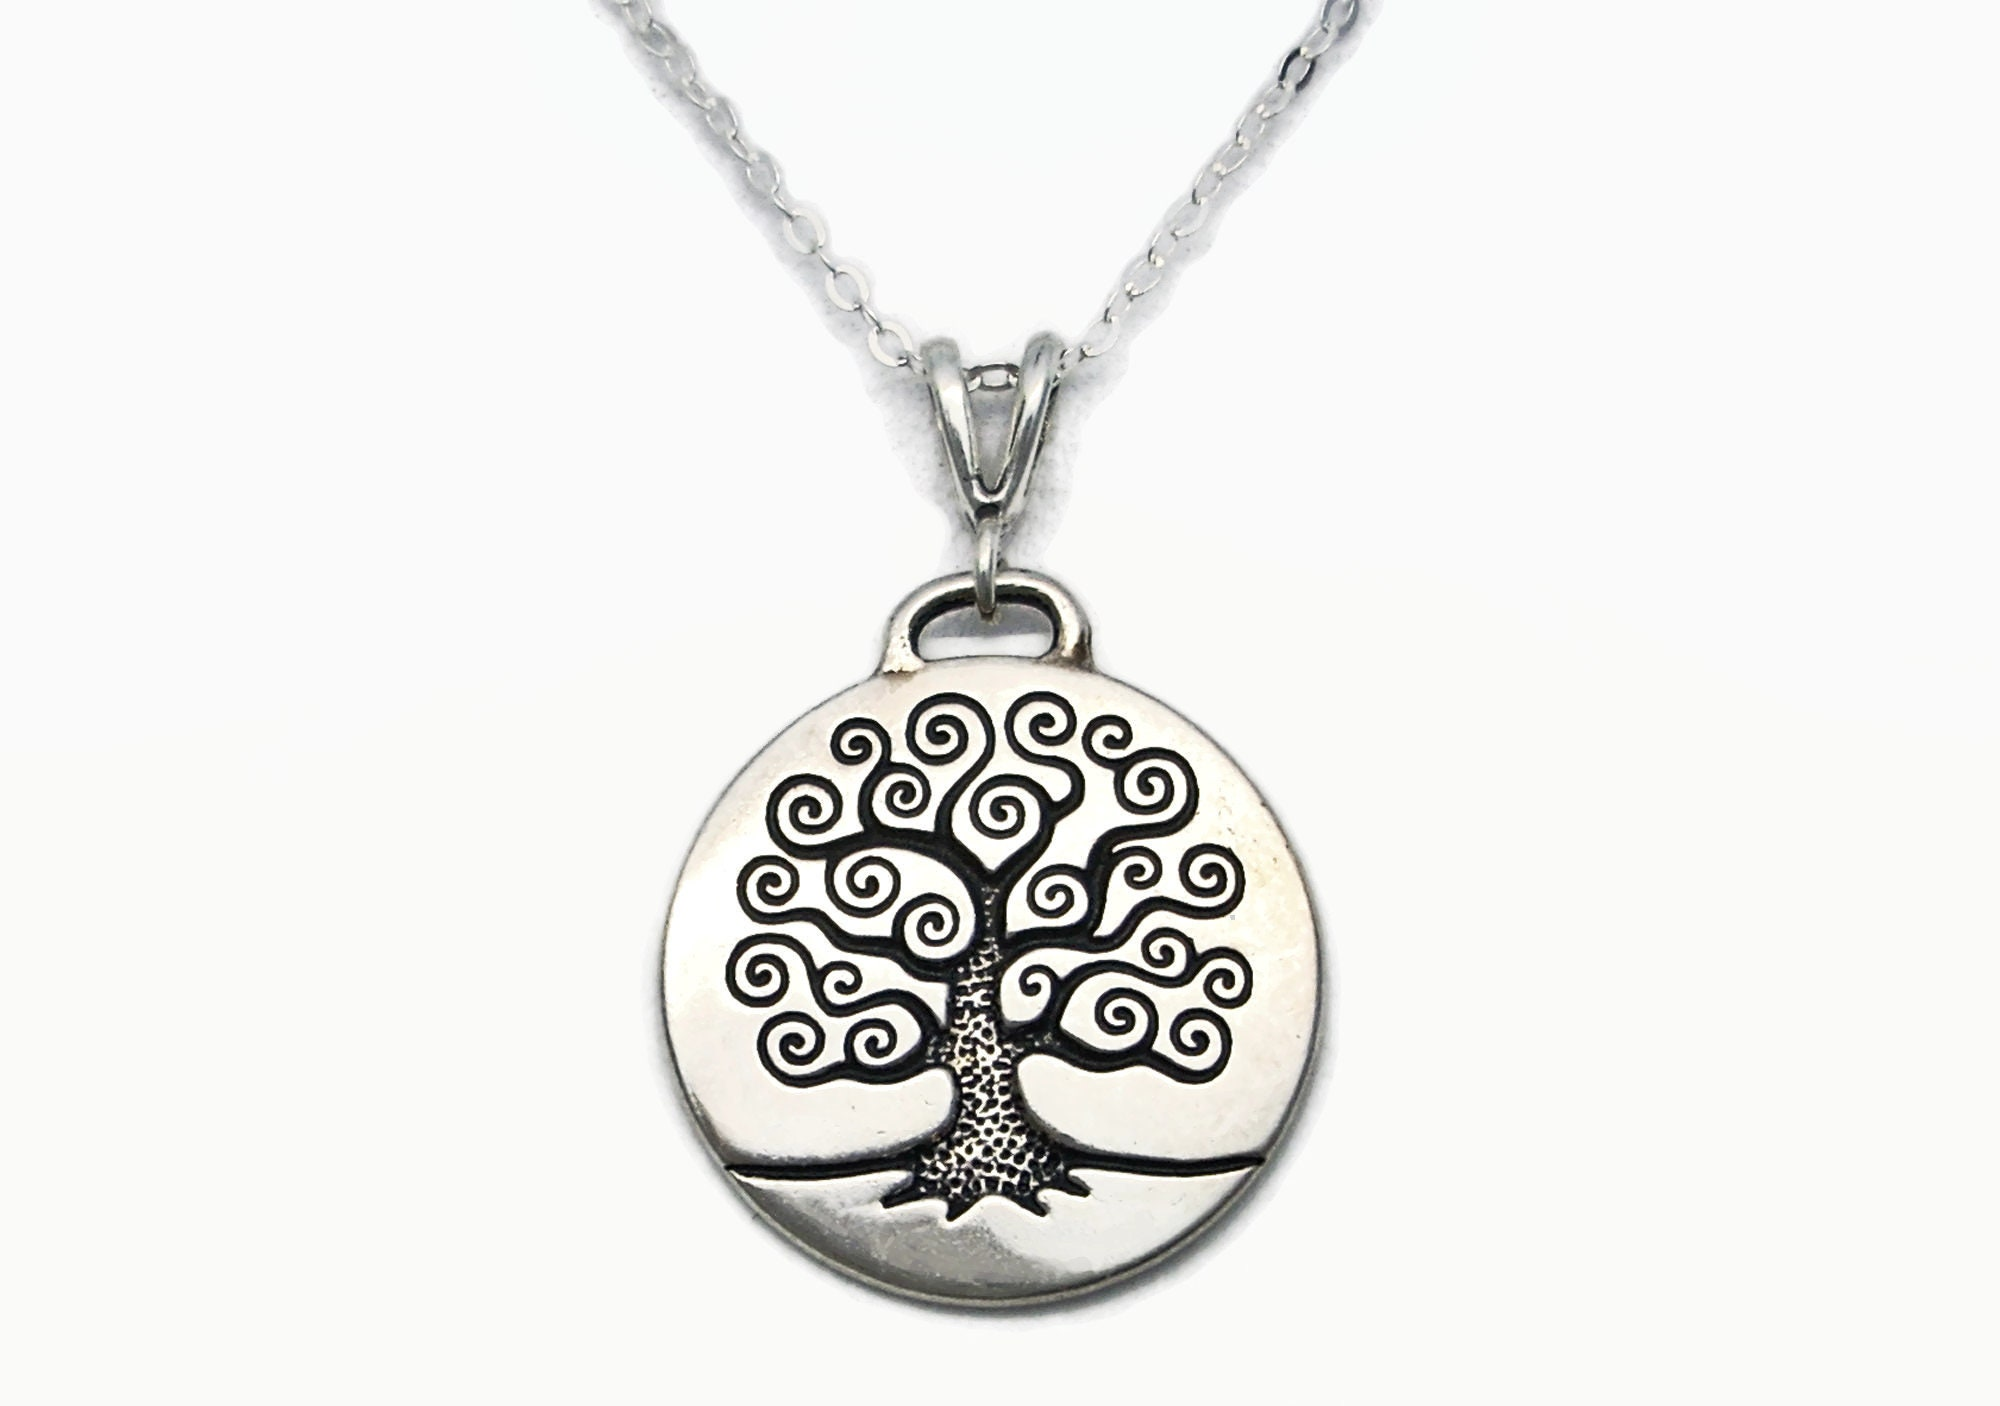 Swirled Tree Of Life New 925 Sterling Silver Pendant Charm With Heart